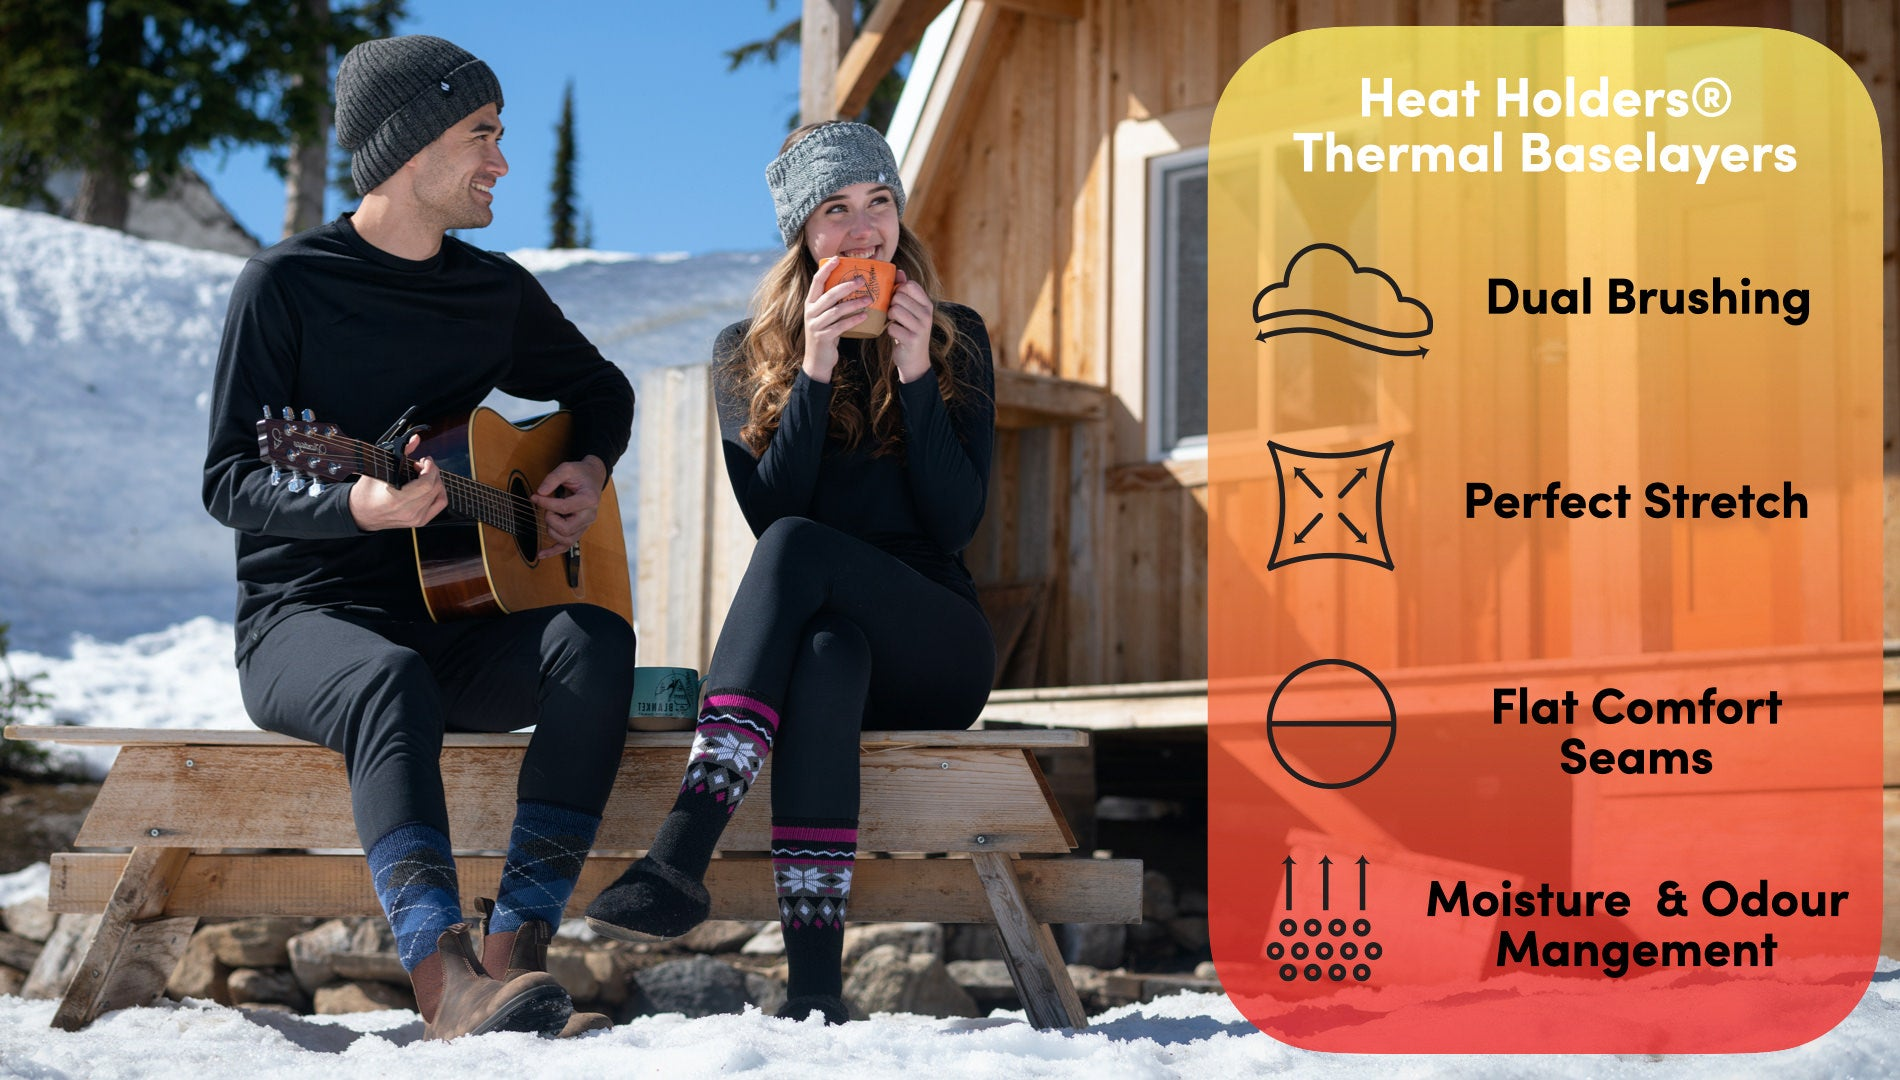 Heat Holders base layer features - dual brushing, perfect stretch, flat comfort seams, and moisture & odor management.